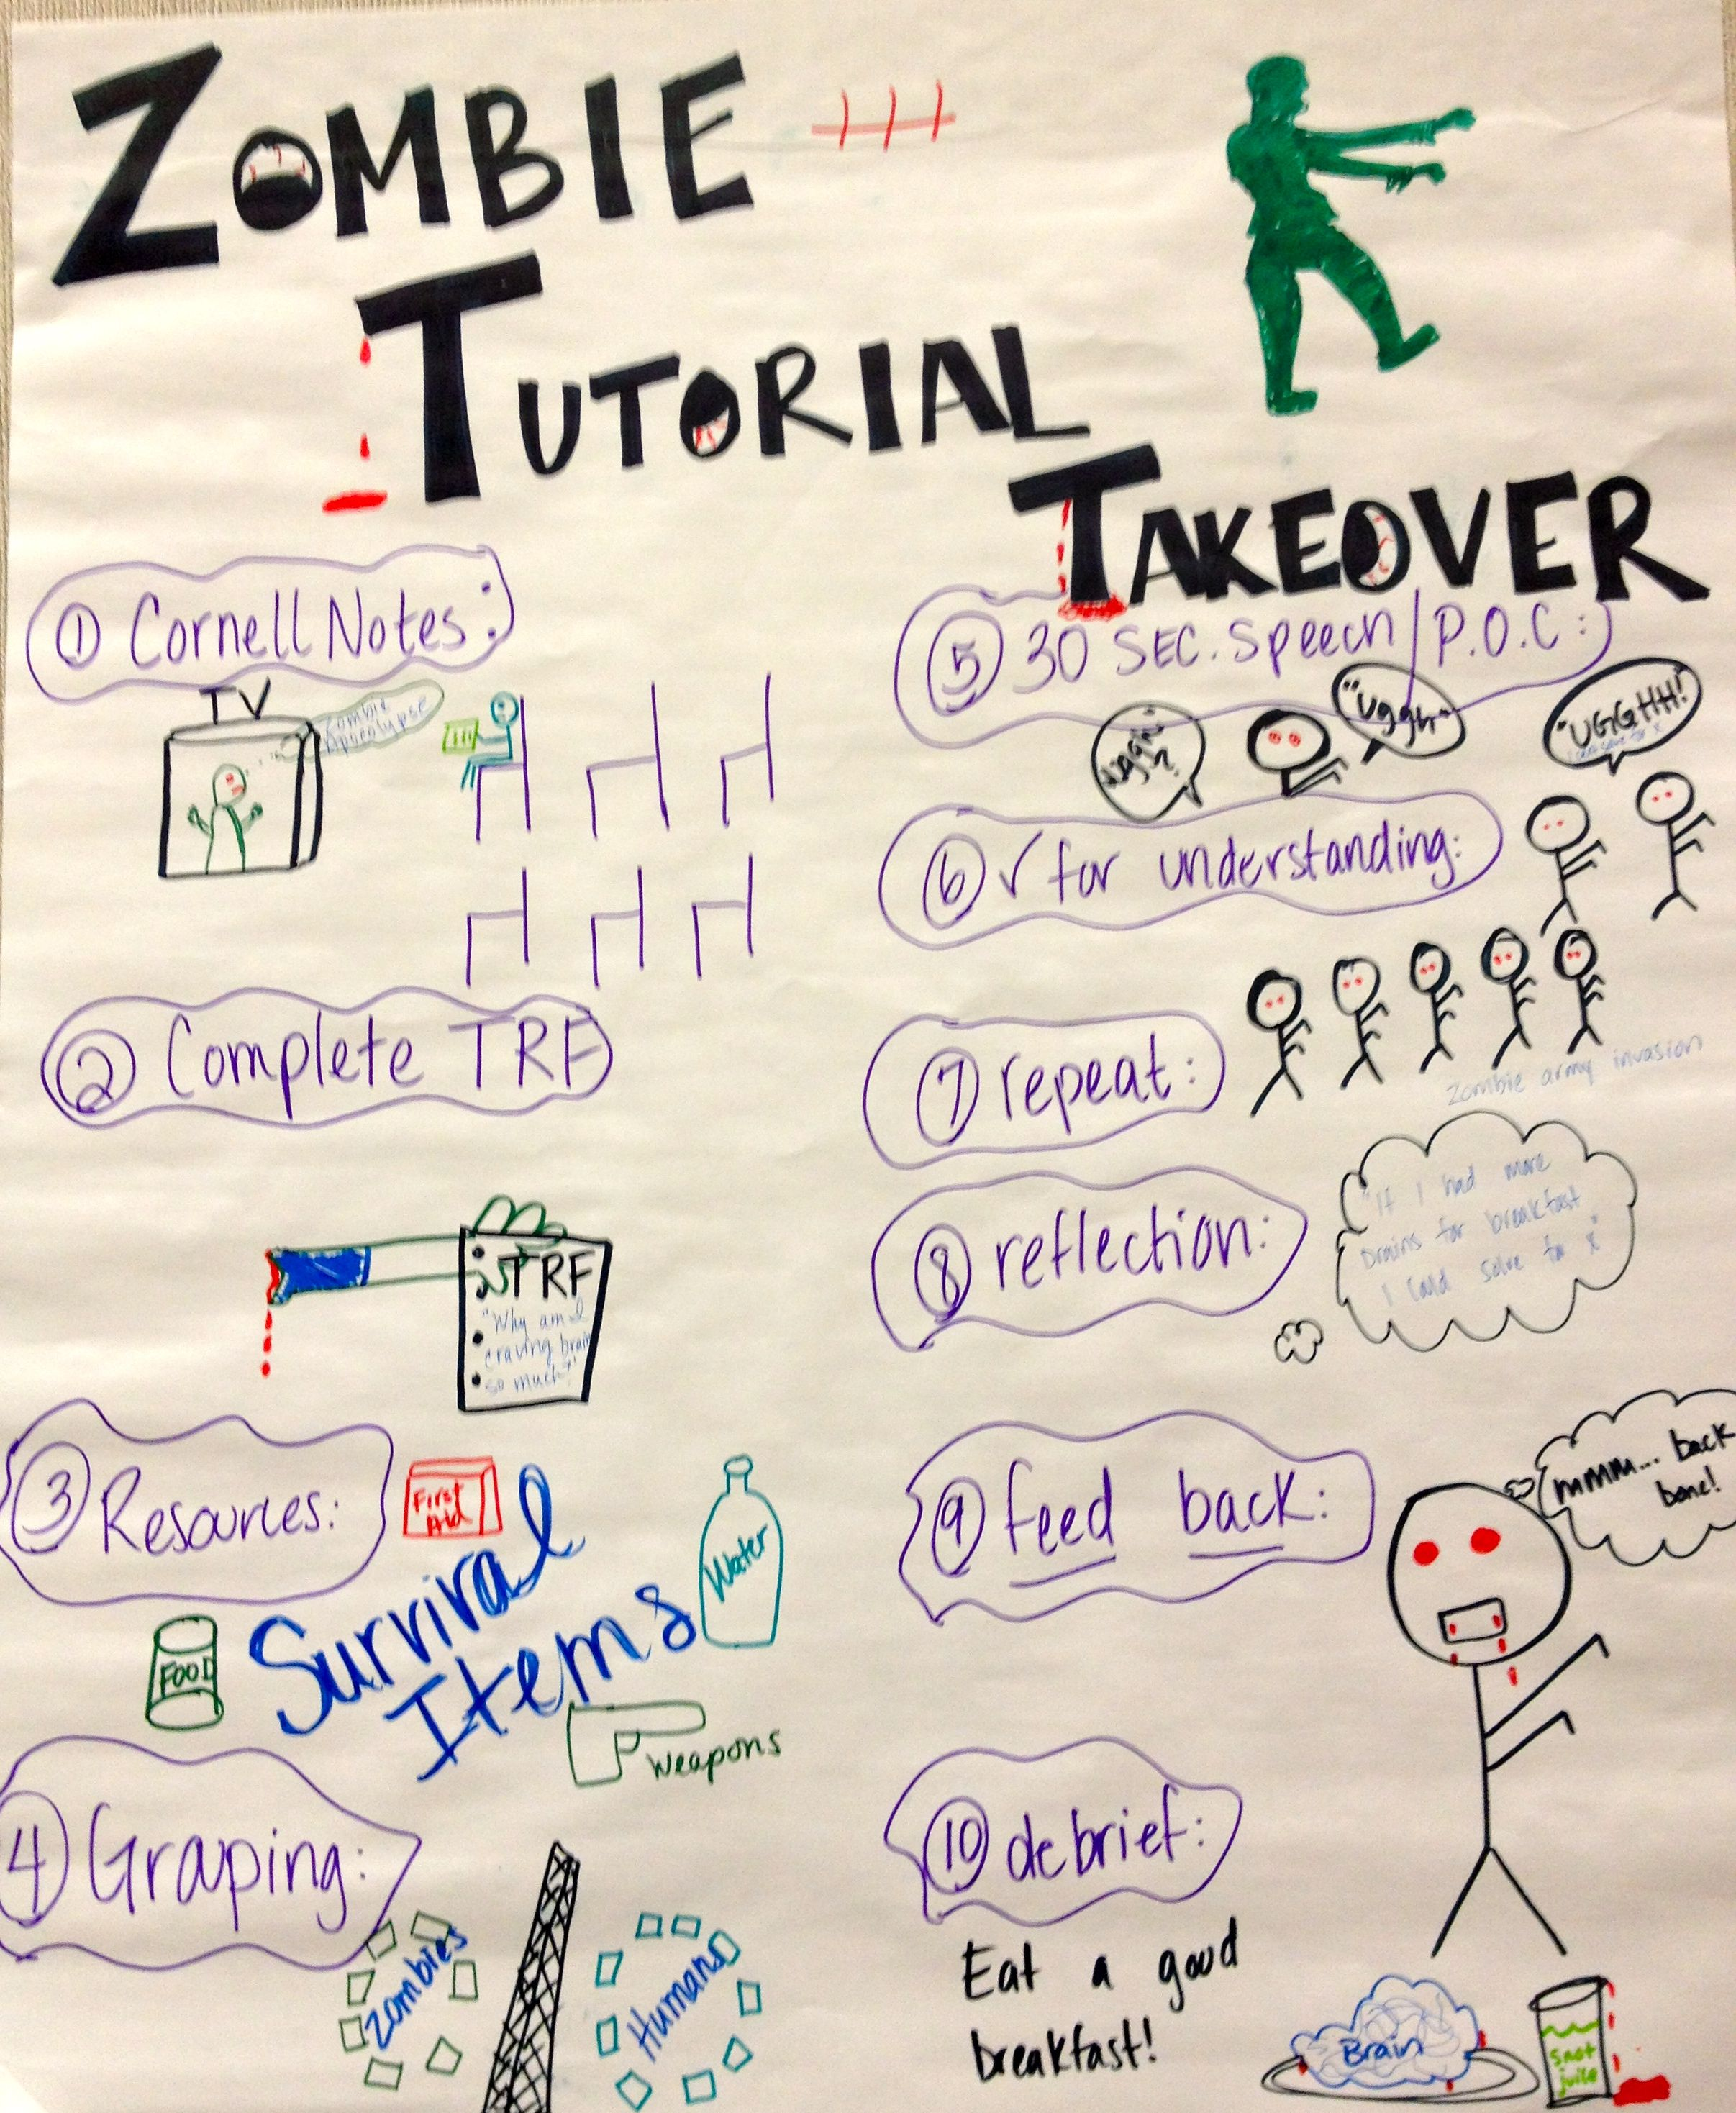 The Avid Tutorial Process Using A Zombie Theme Created At Our Tutorology Session In Plano Tx